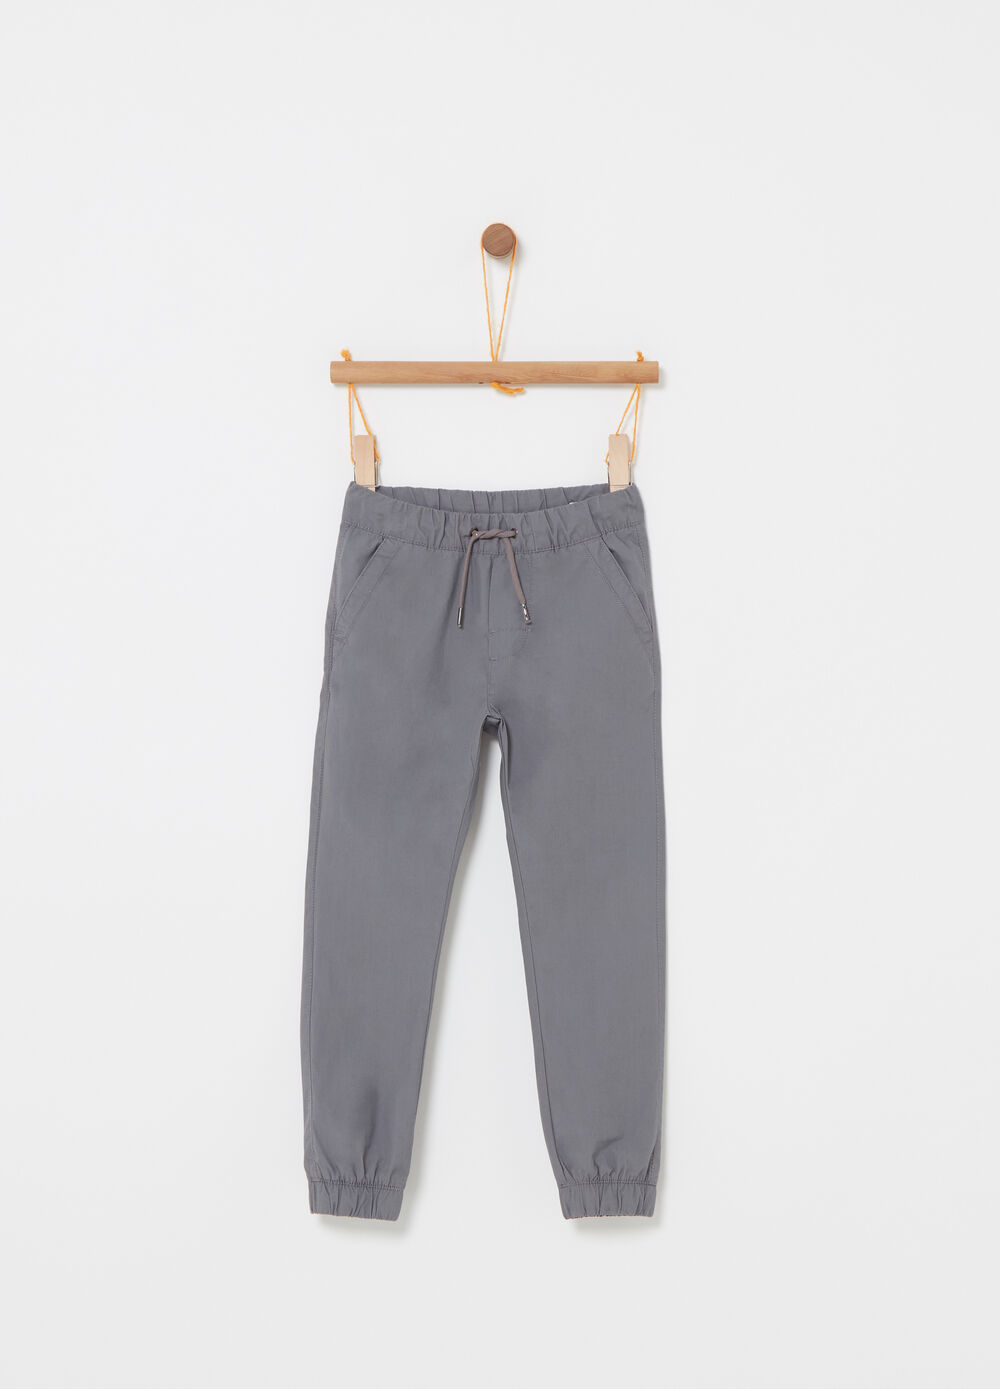 Poplin trousers with drawstring